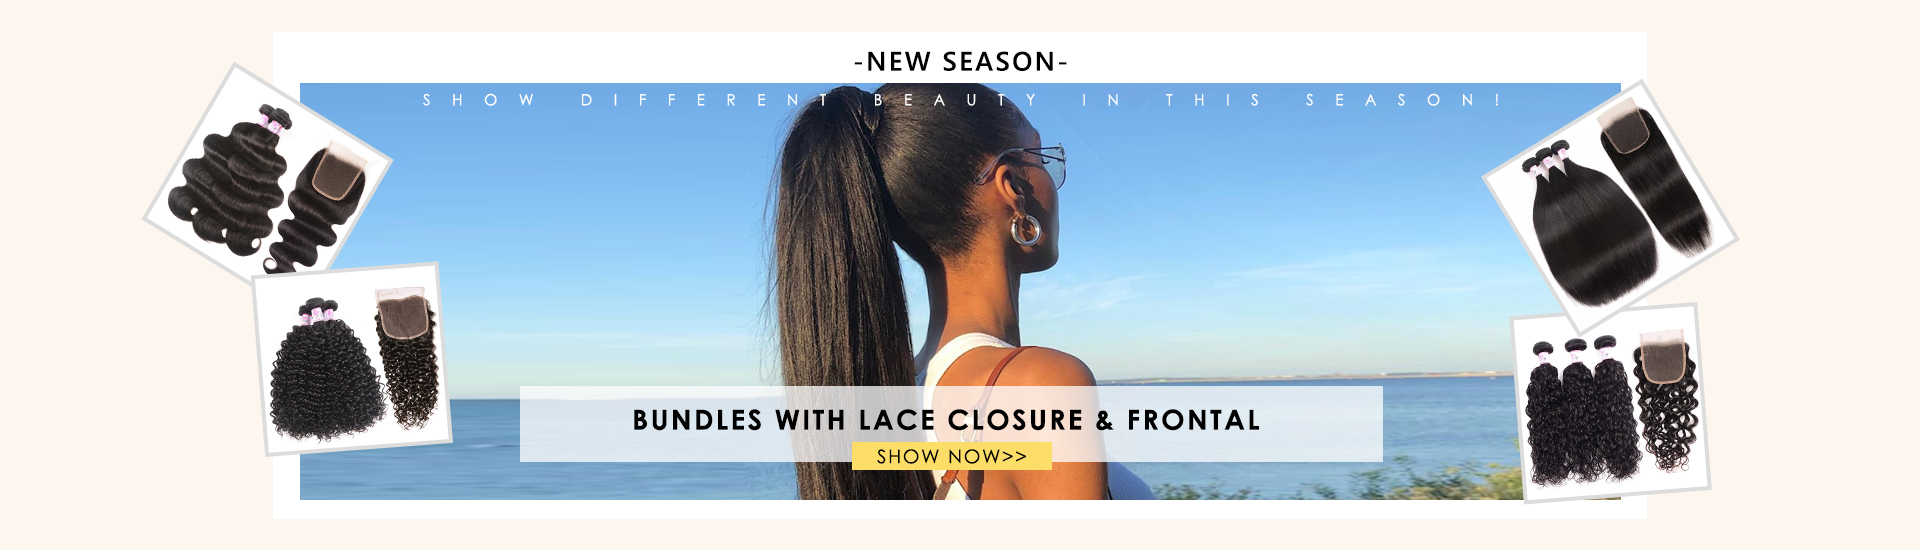 closure and frontal